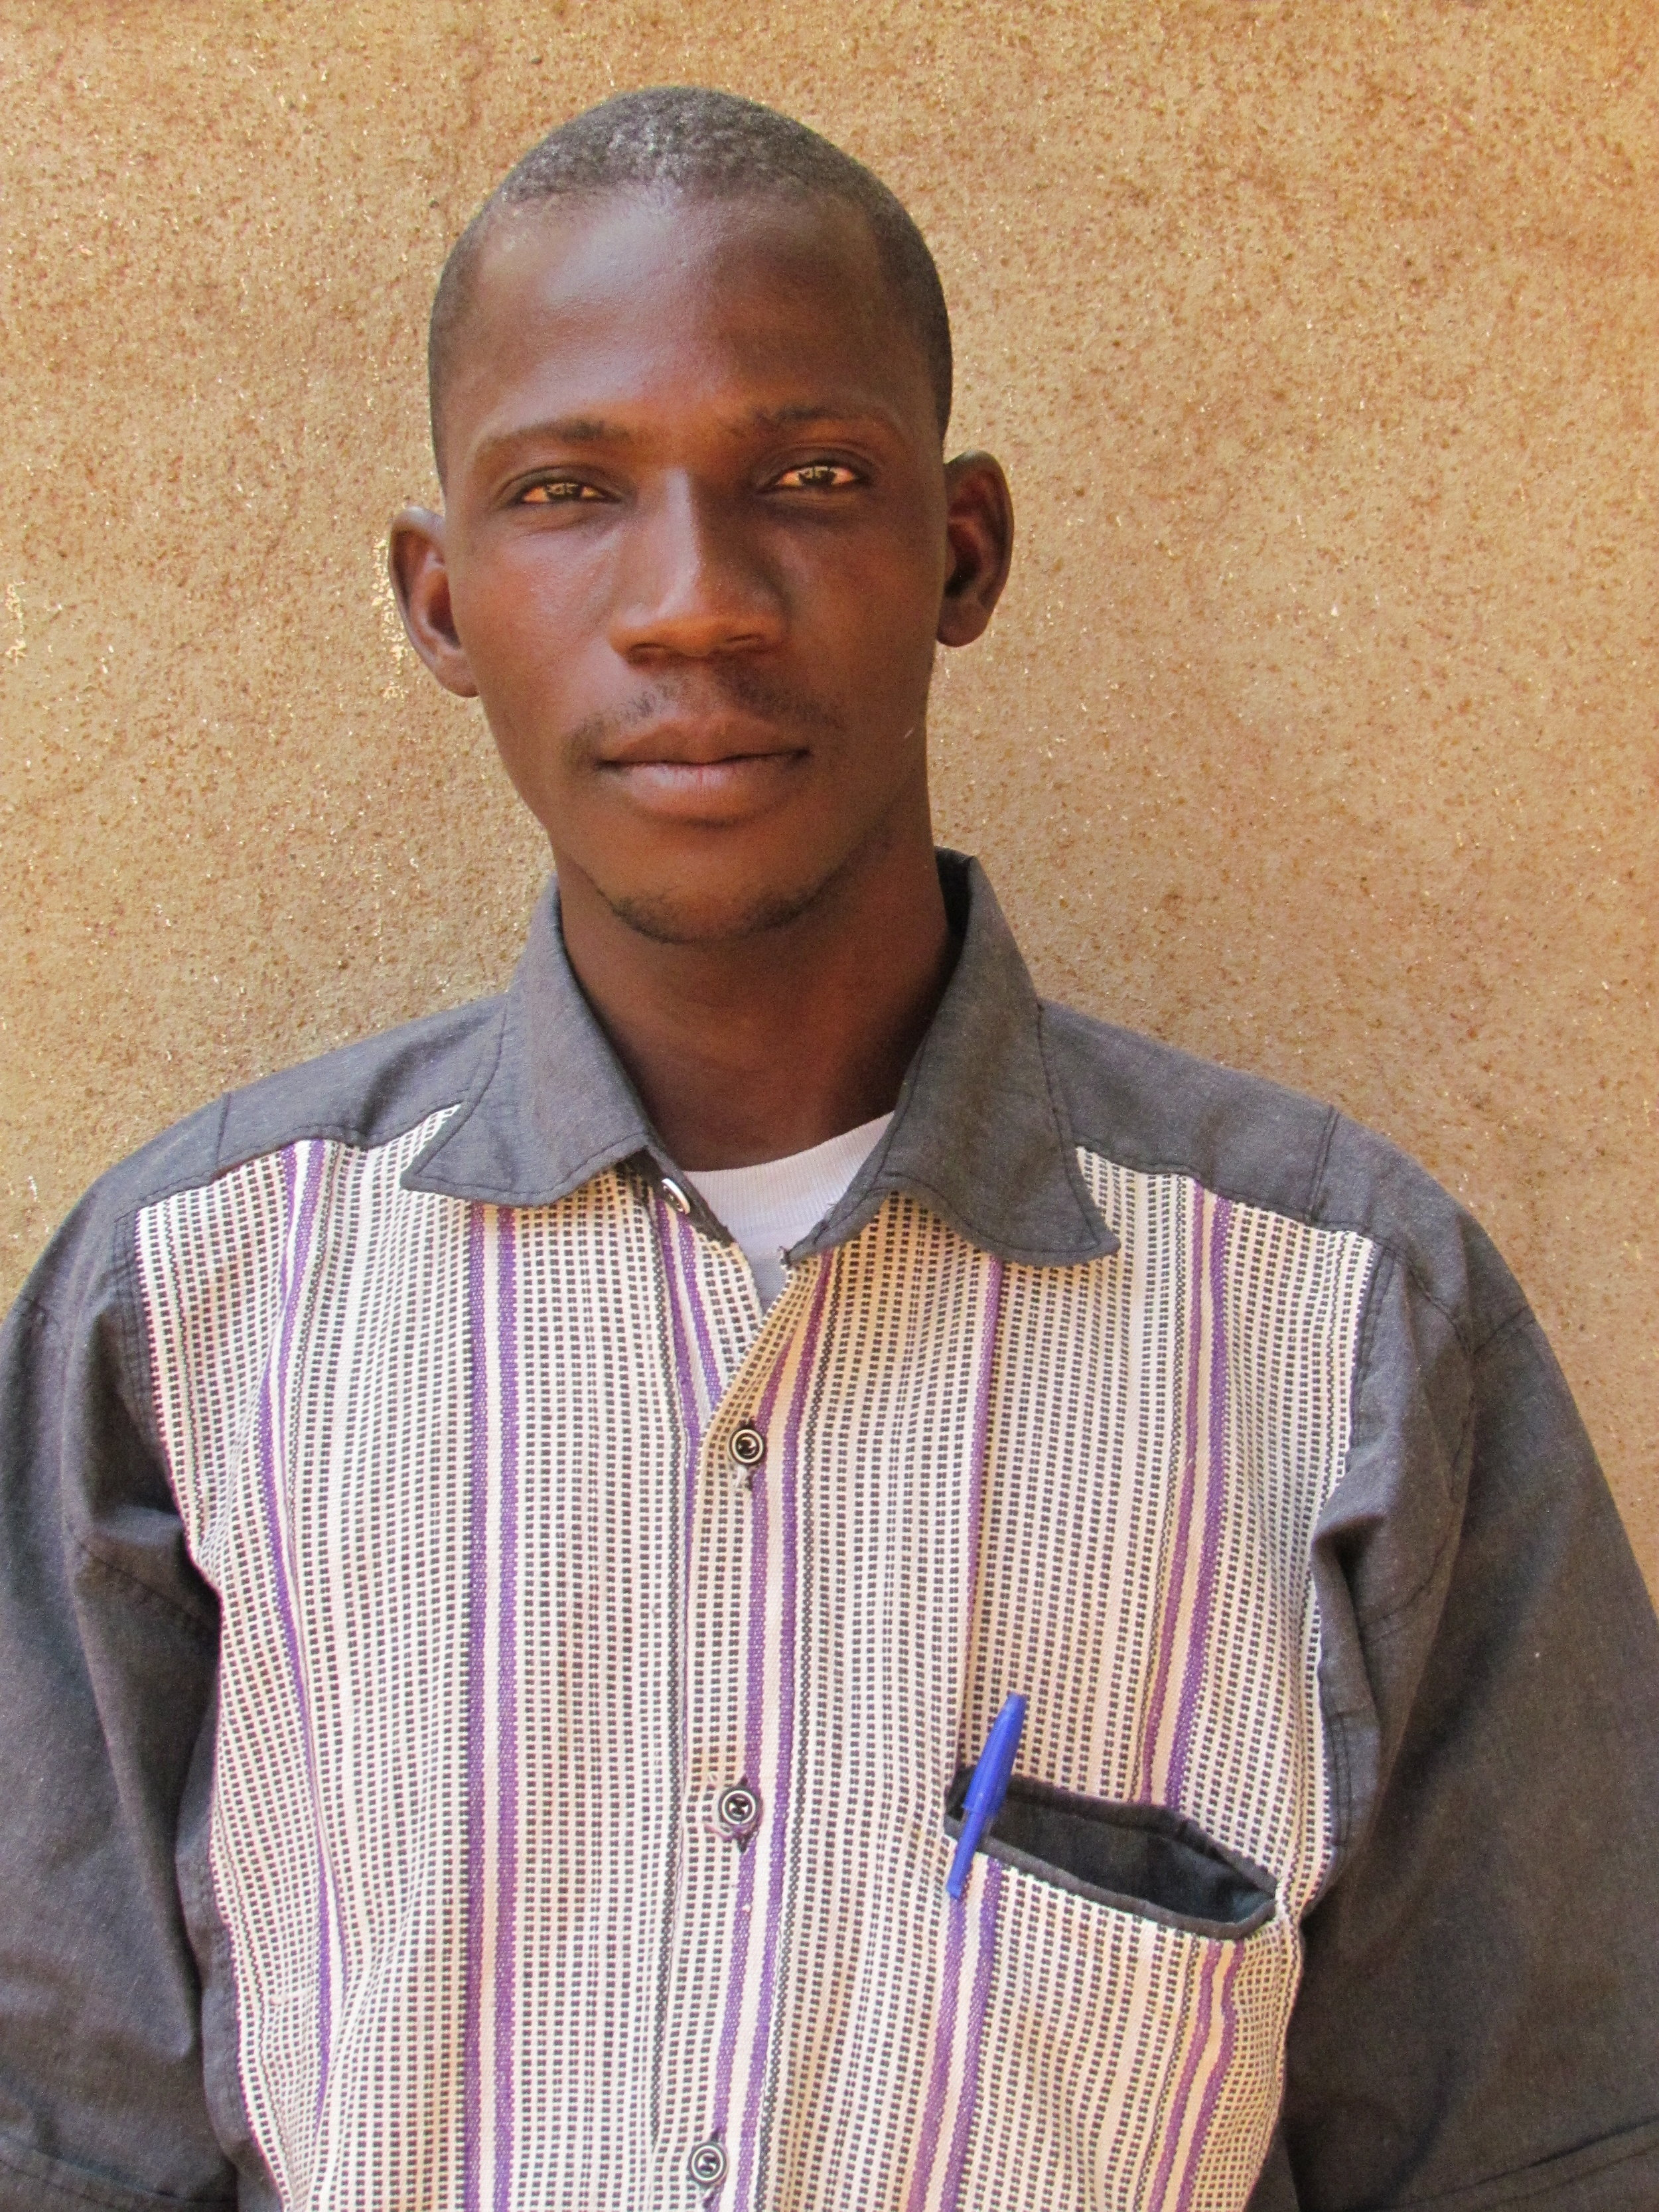 Younissa benefited from the teachers at Mali Rising's Frances W. Burton Middle School, and now he is giving back by being a teacher himself.